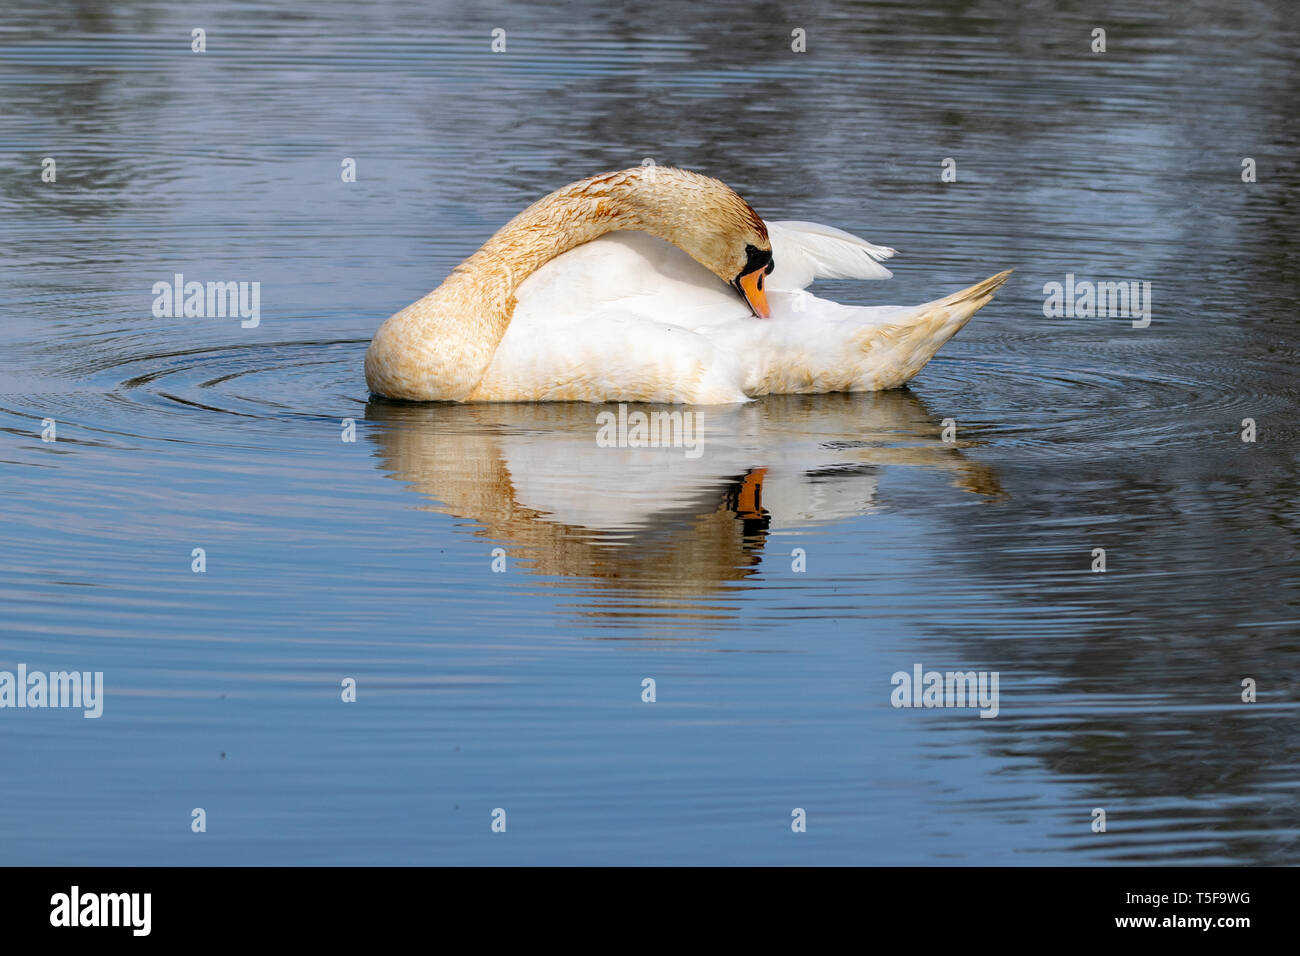 Adult mute swan (cygnus olor) with discoloured feathers from disturbing lake sediment during feeding Stock Photo